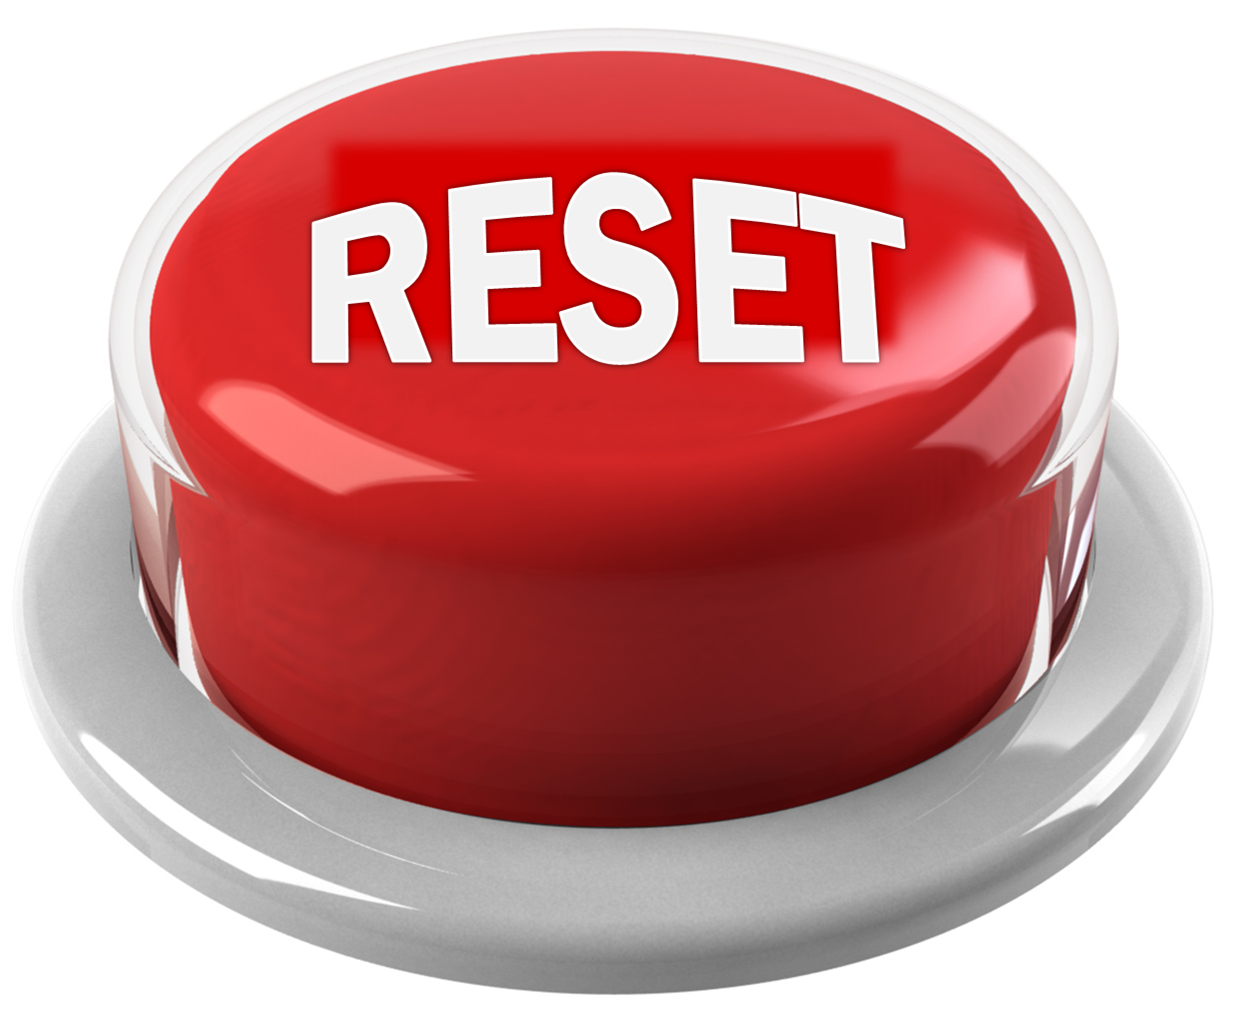 overloaded out of control press the reset button teacherhead